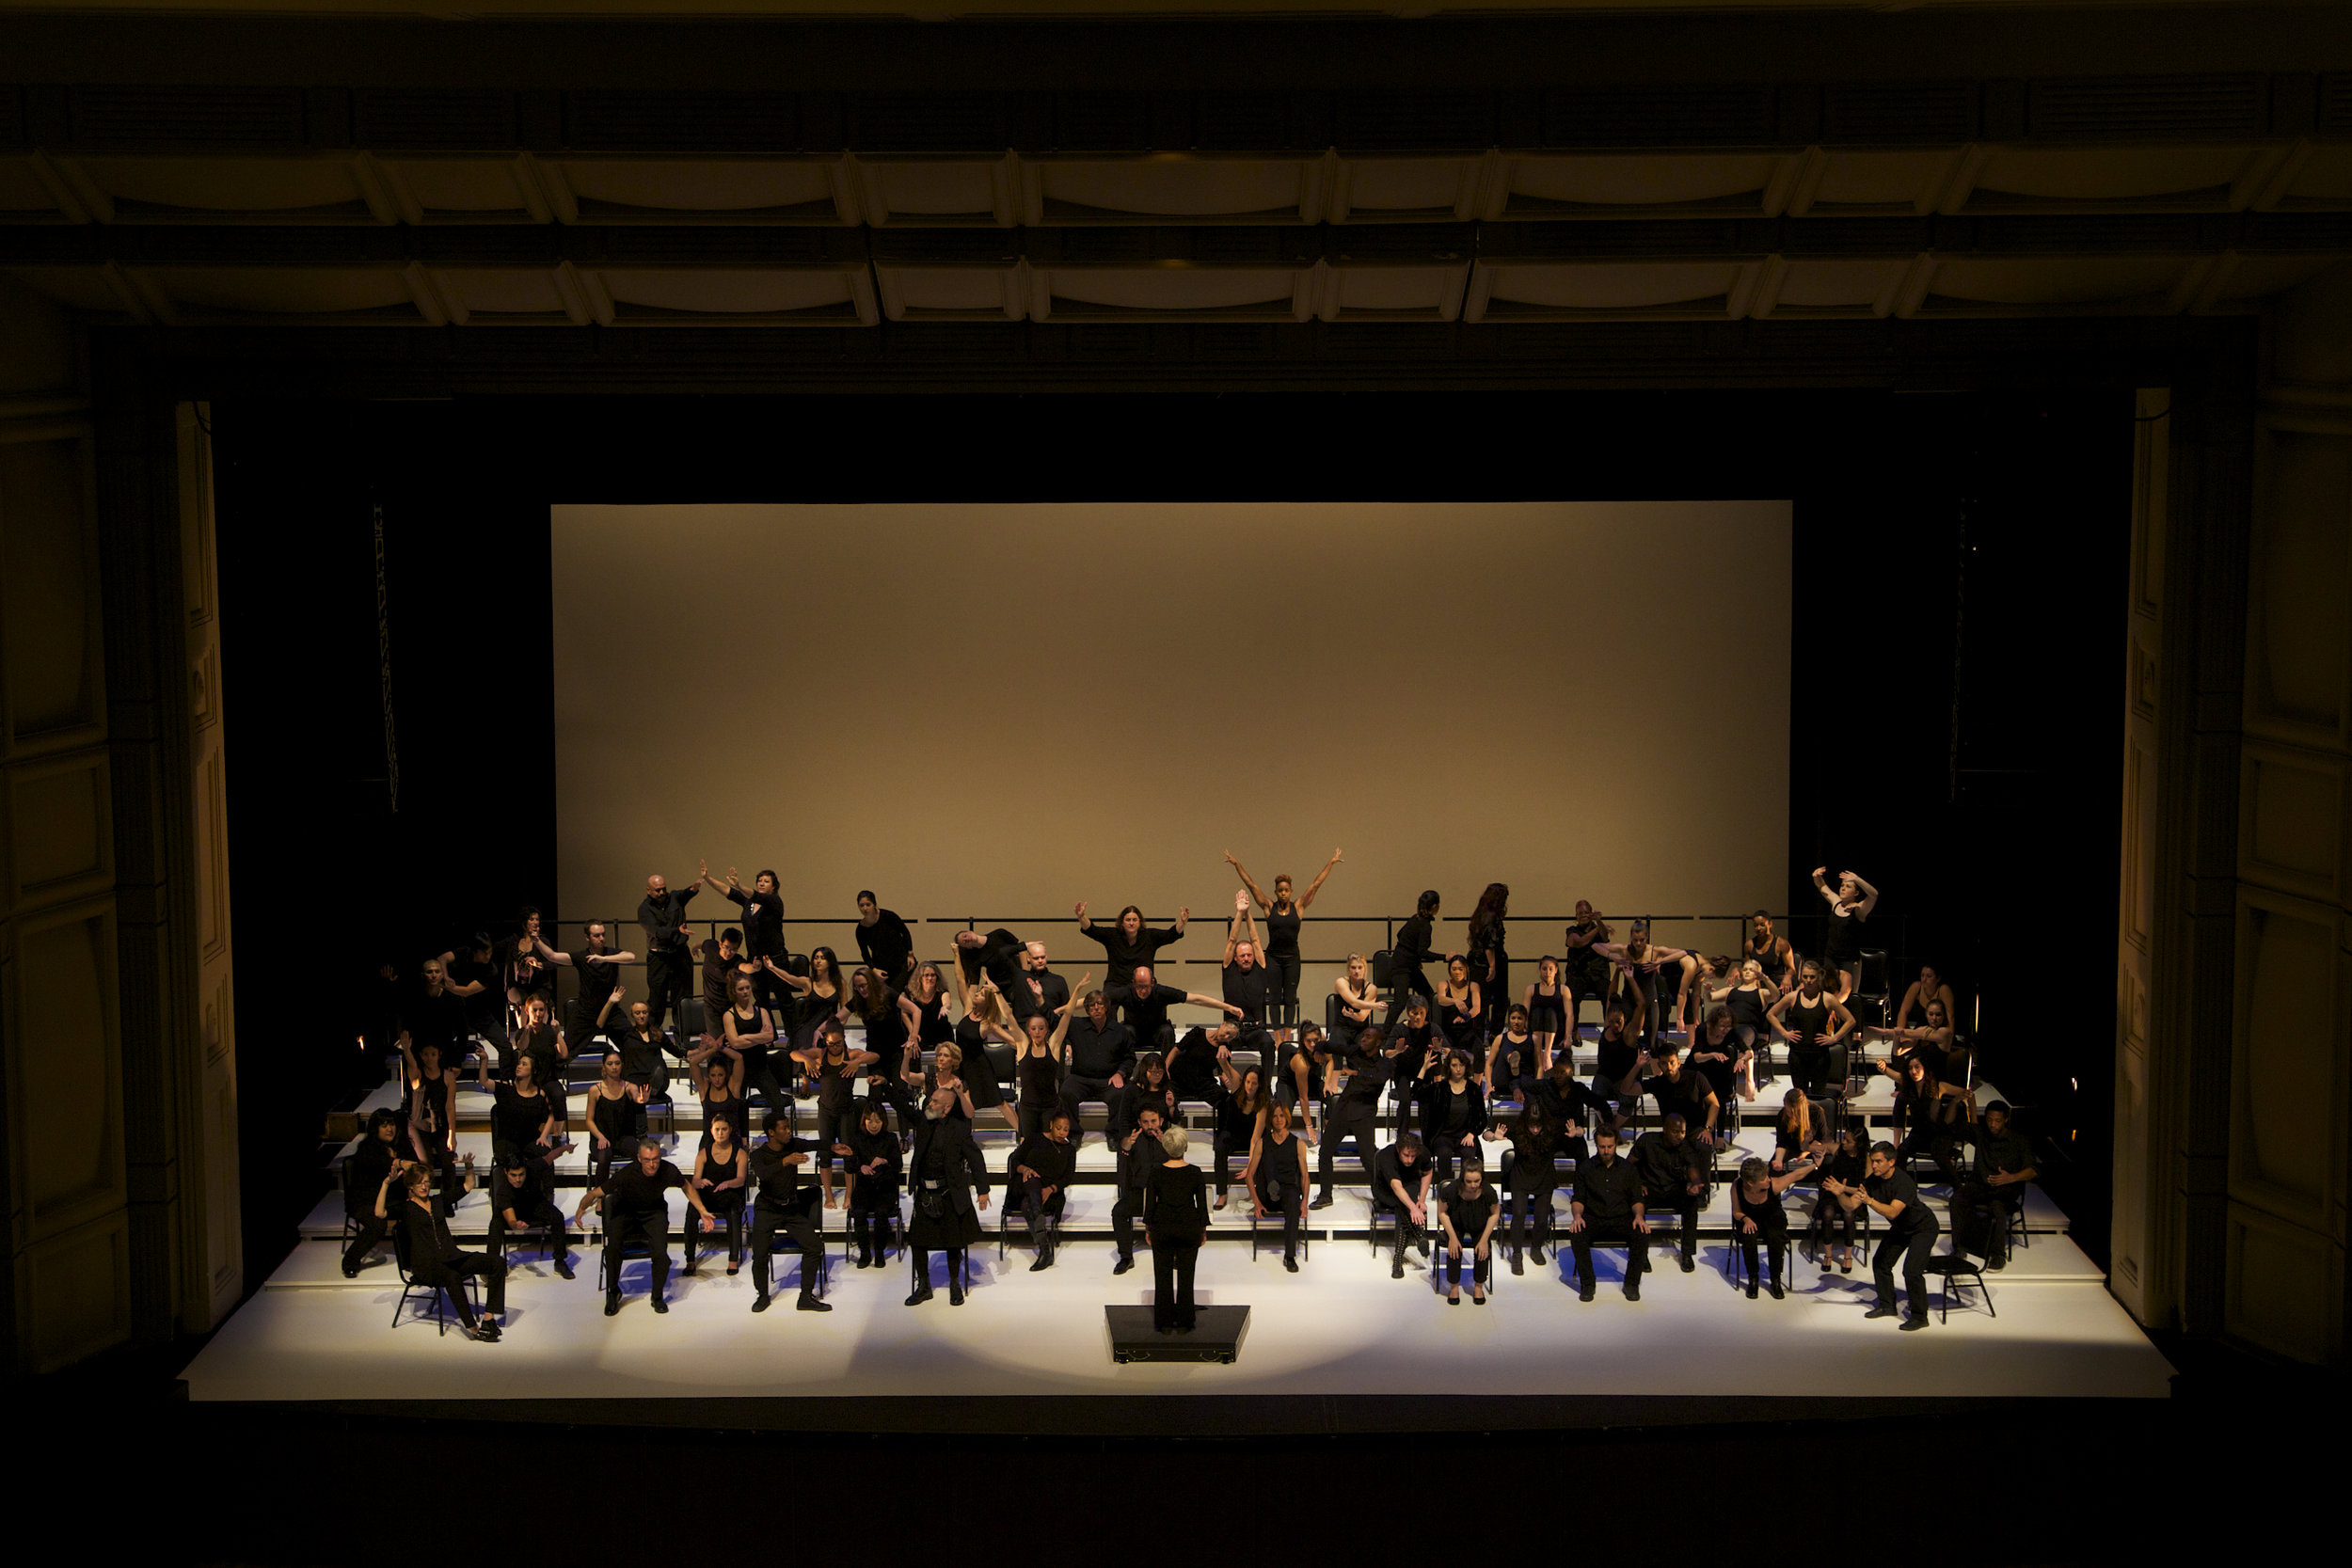 LYON 2015-10-22 The Symphonic Body 277.jpg